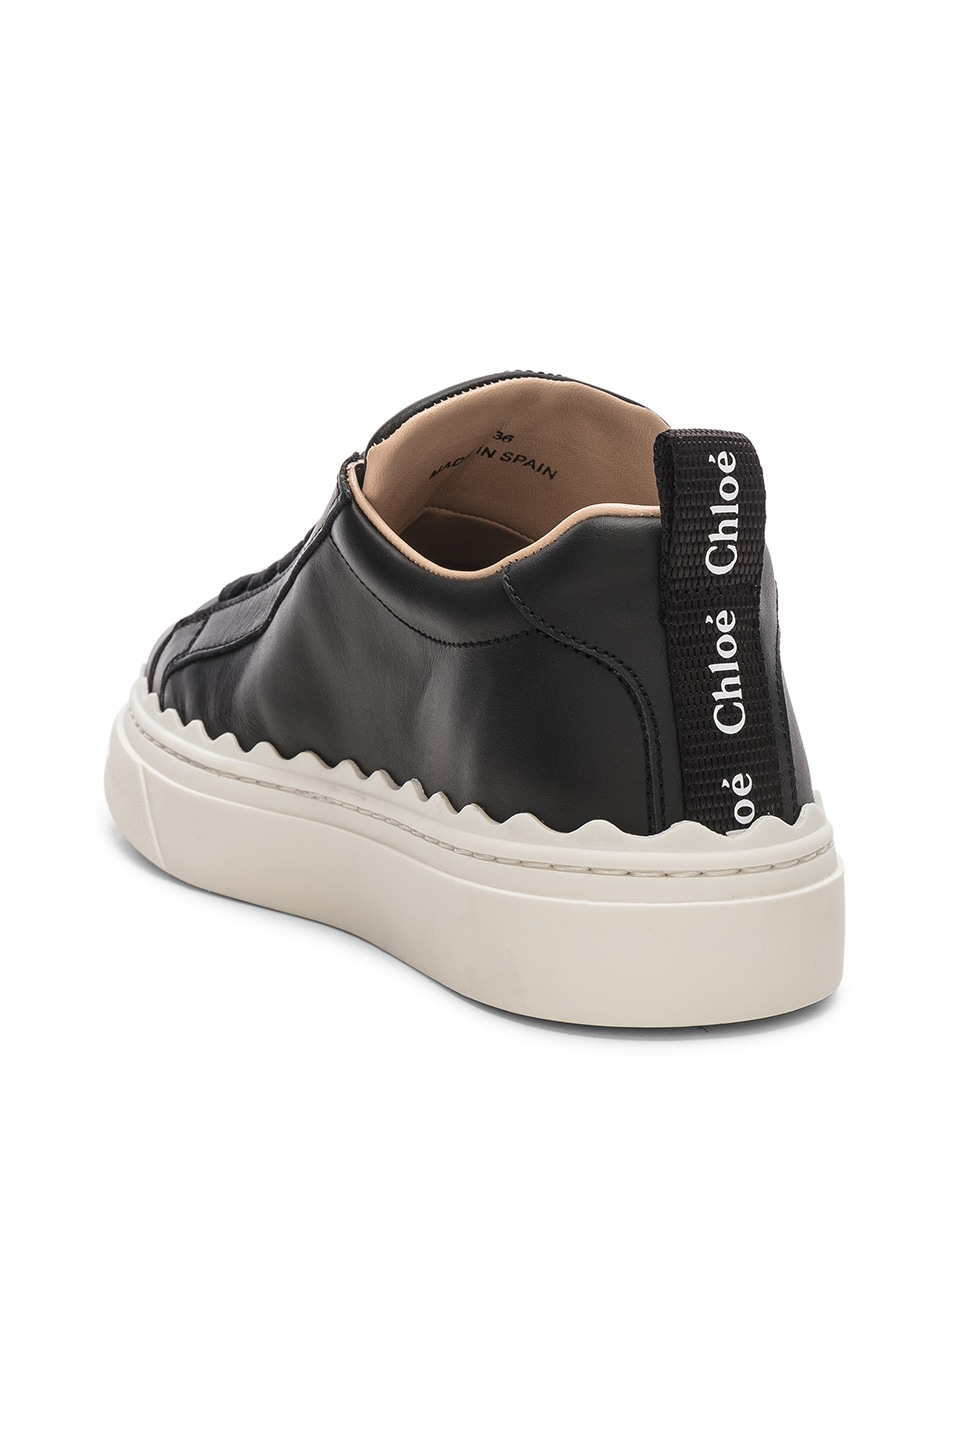 Image 3 of Chloe Low Top Sneakers in Black